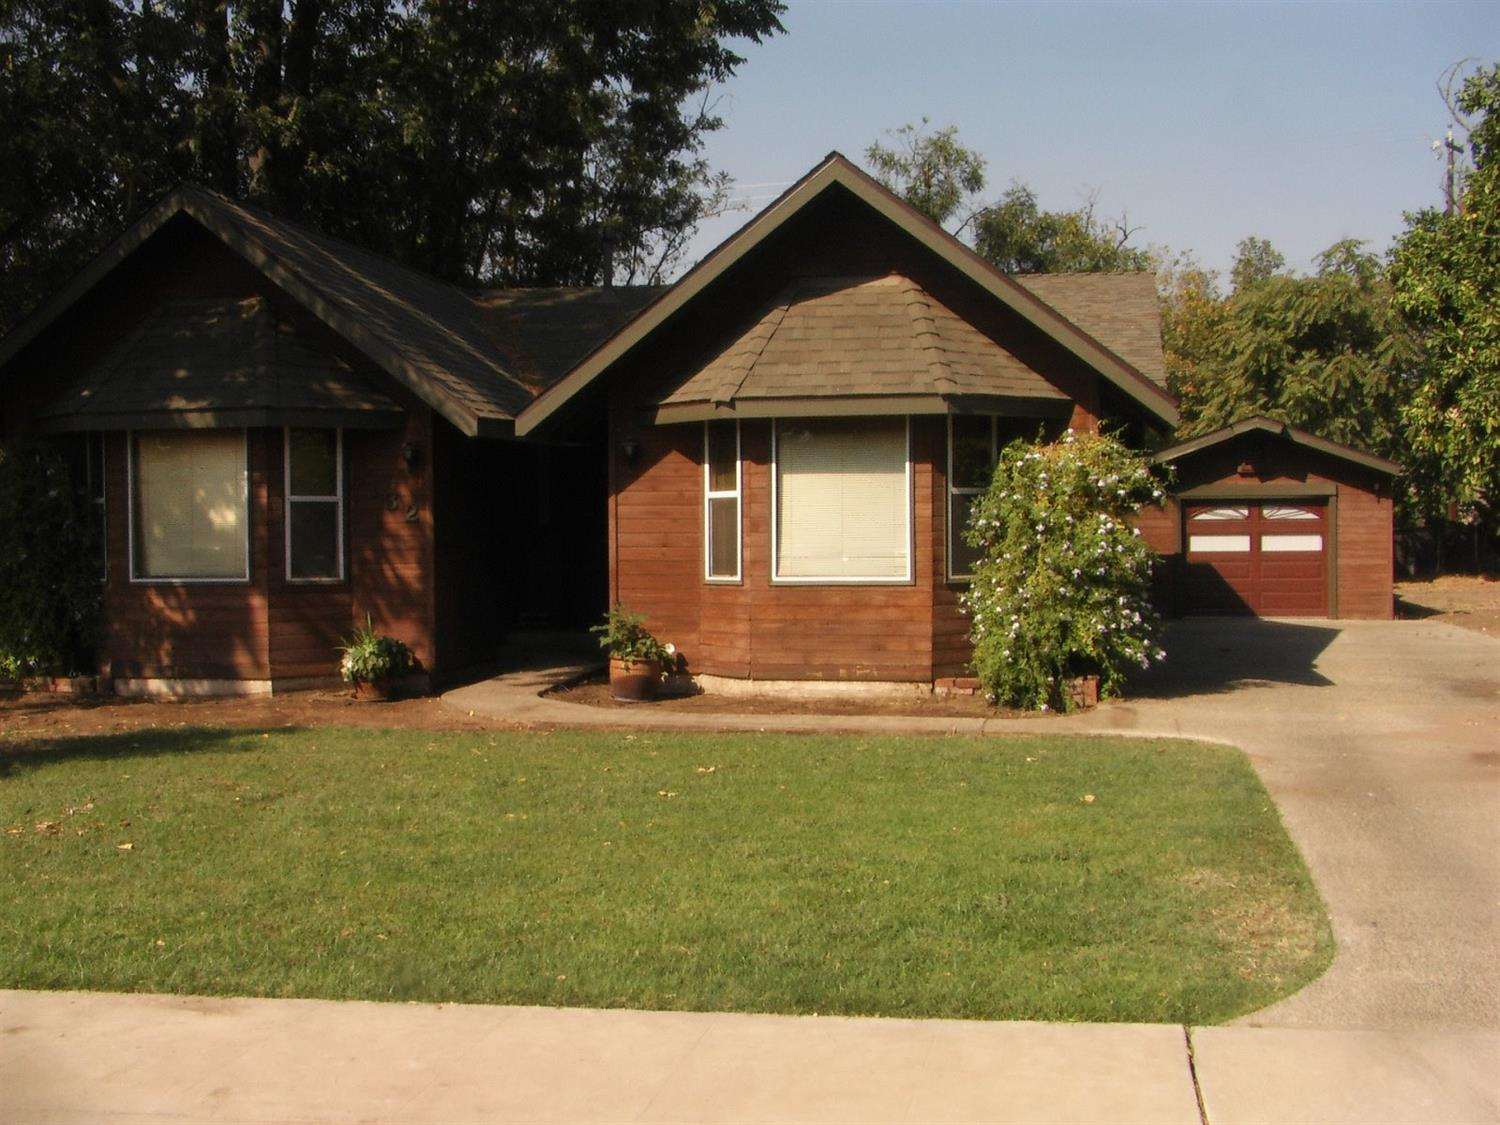 132 Woodworth Avenue, Clovis, CA 93612